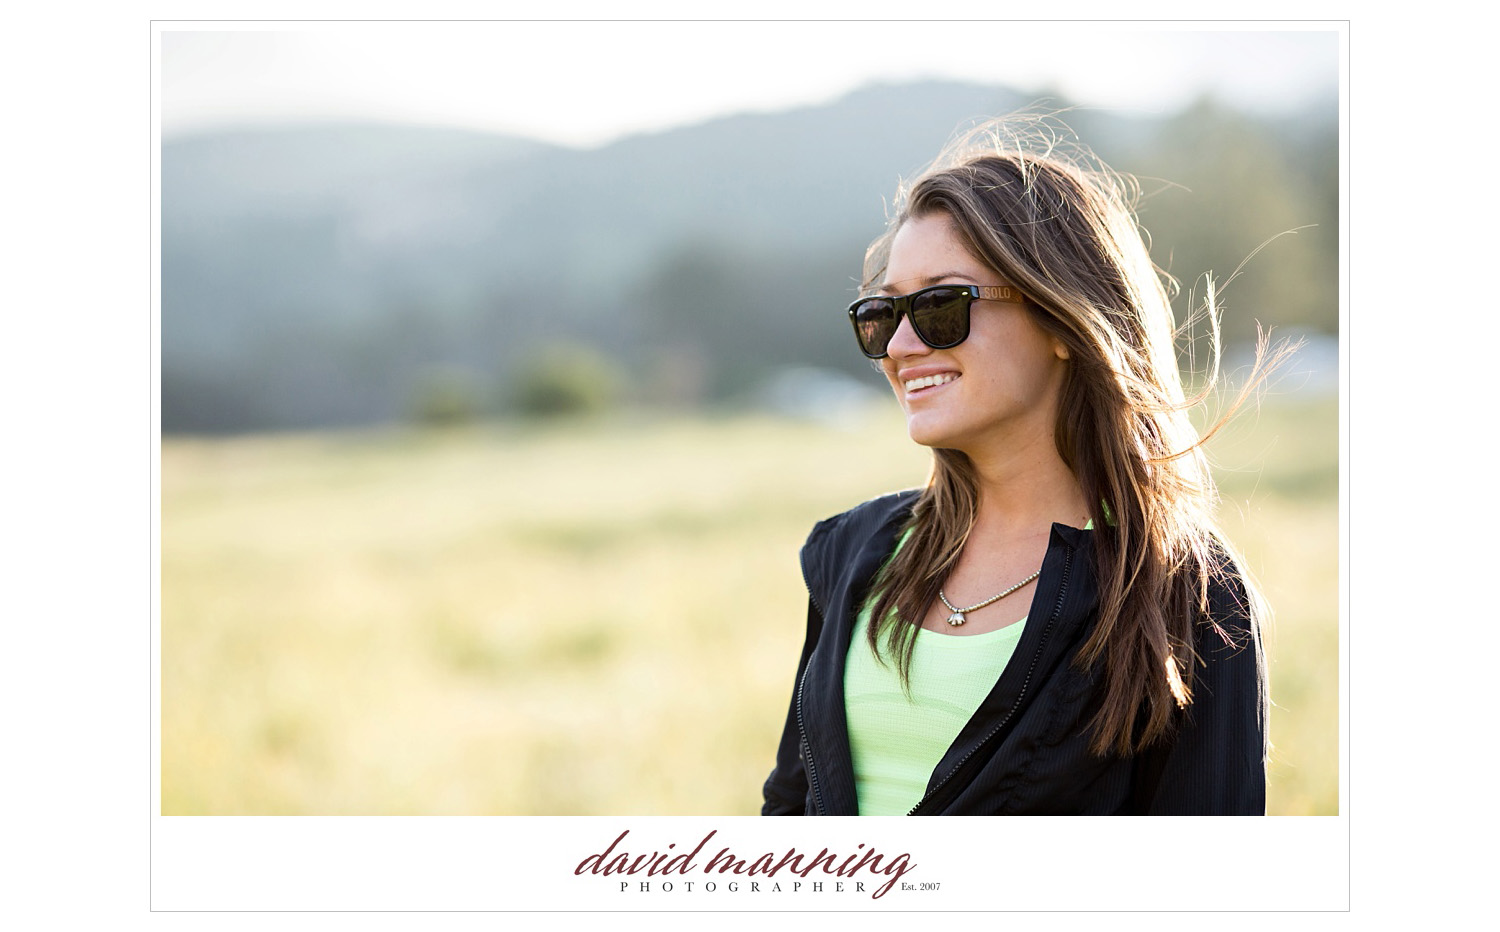 SOLO-Eyewear--Commercial-Editorial-Photos-David-Manning-Photographers-0032.jpg